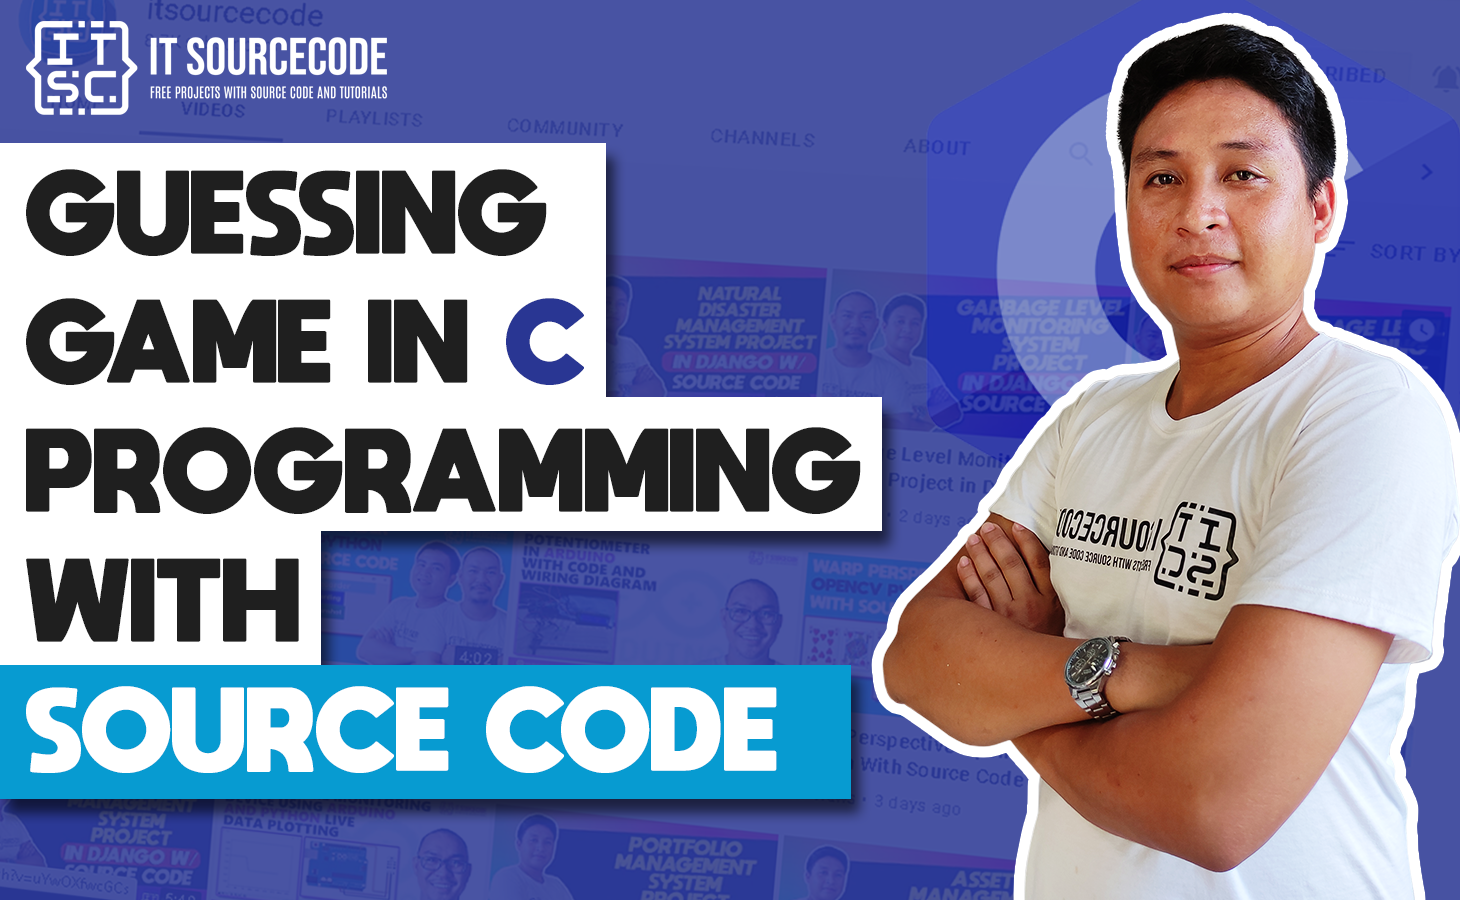 Guessing Game in C Programming with Source Code